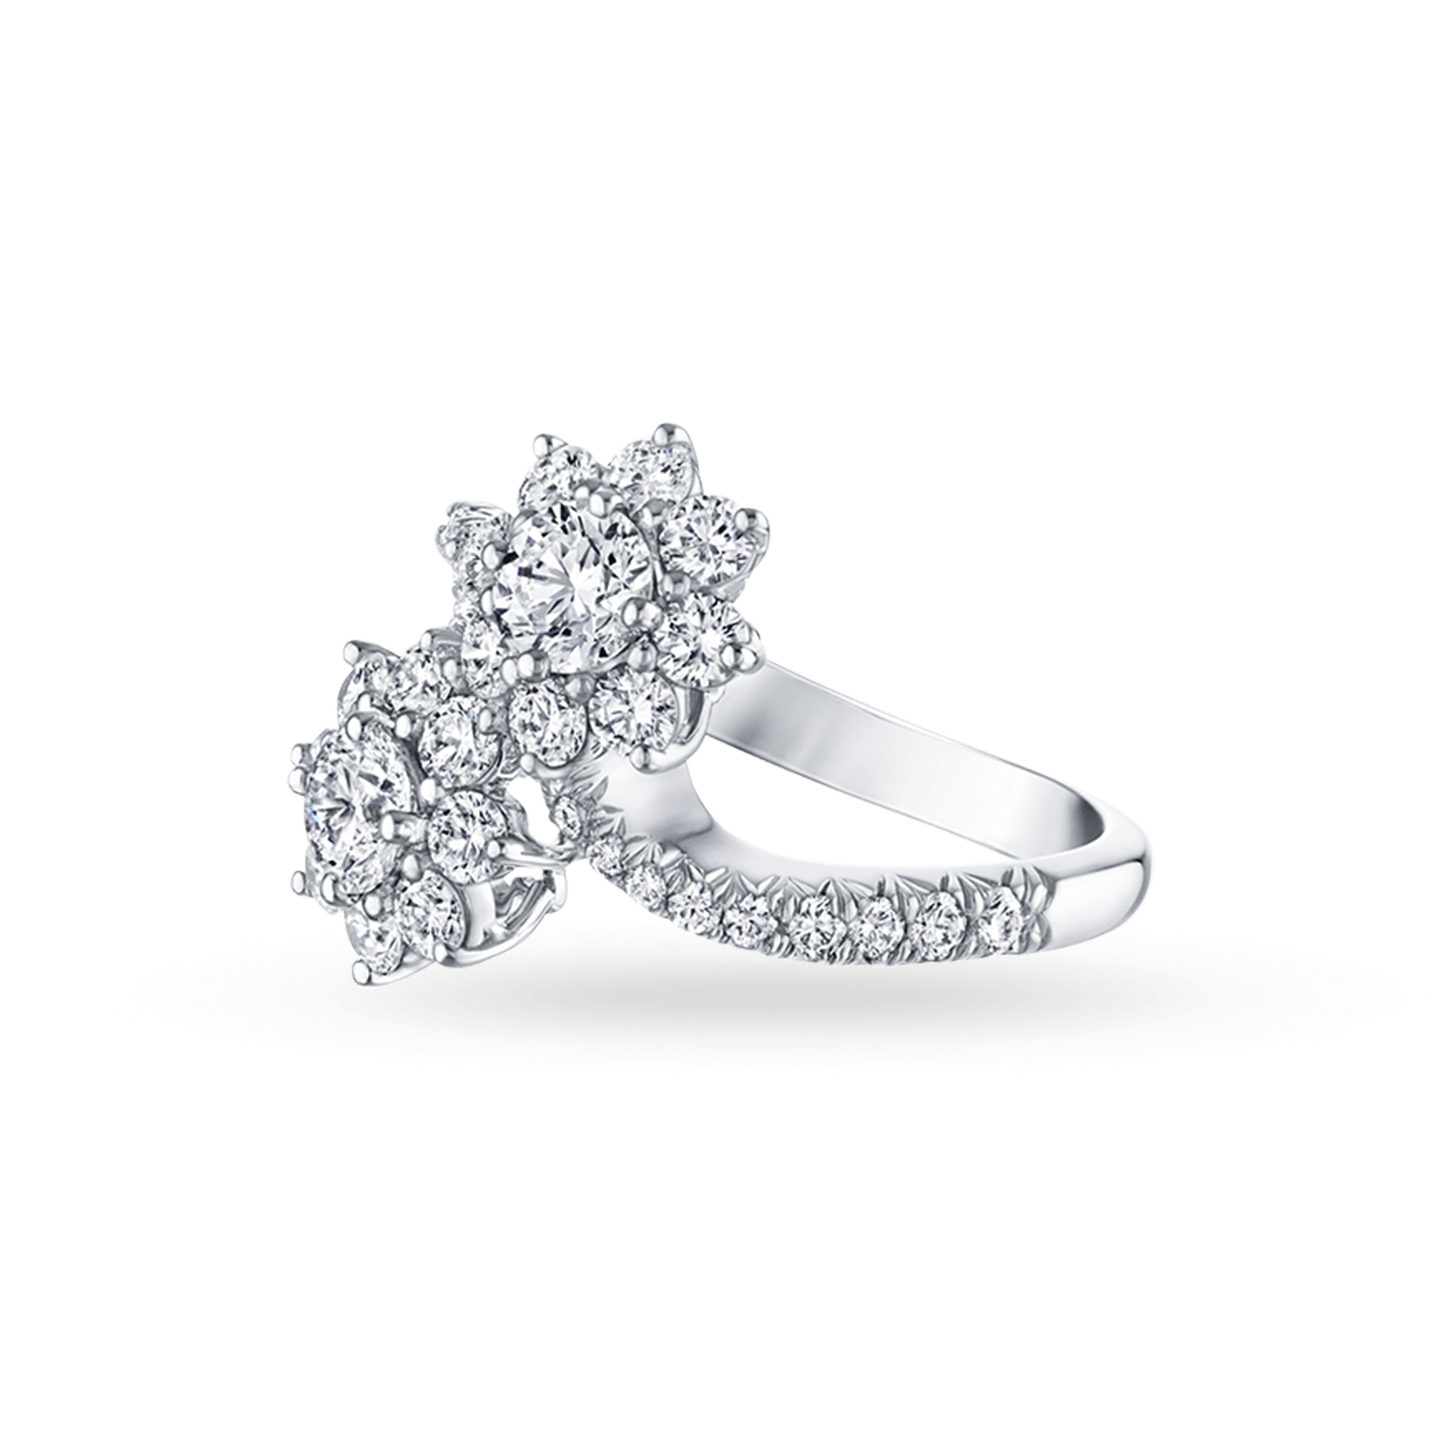 Sunflower Diamond Twin Ring, Product Image 2